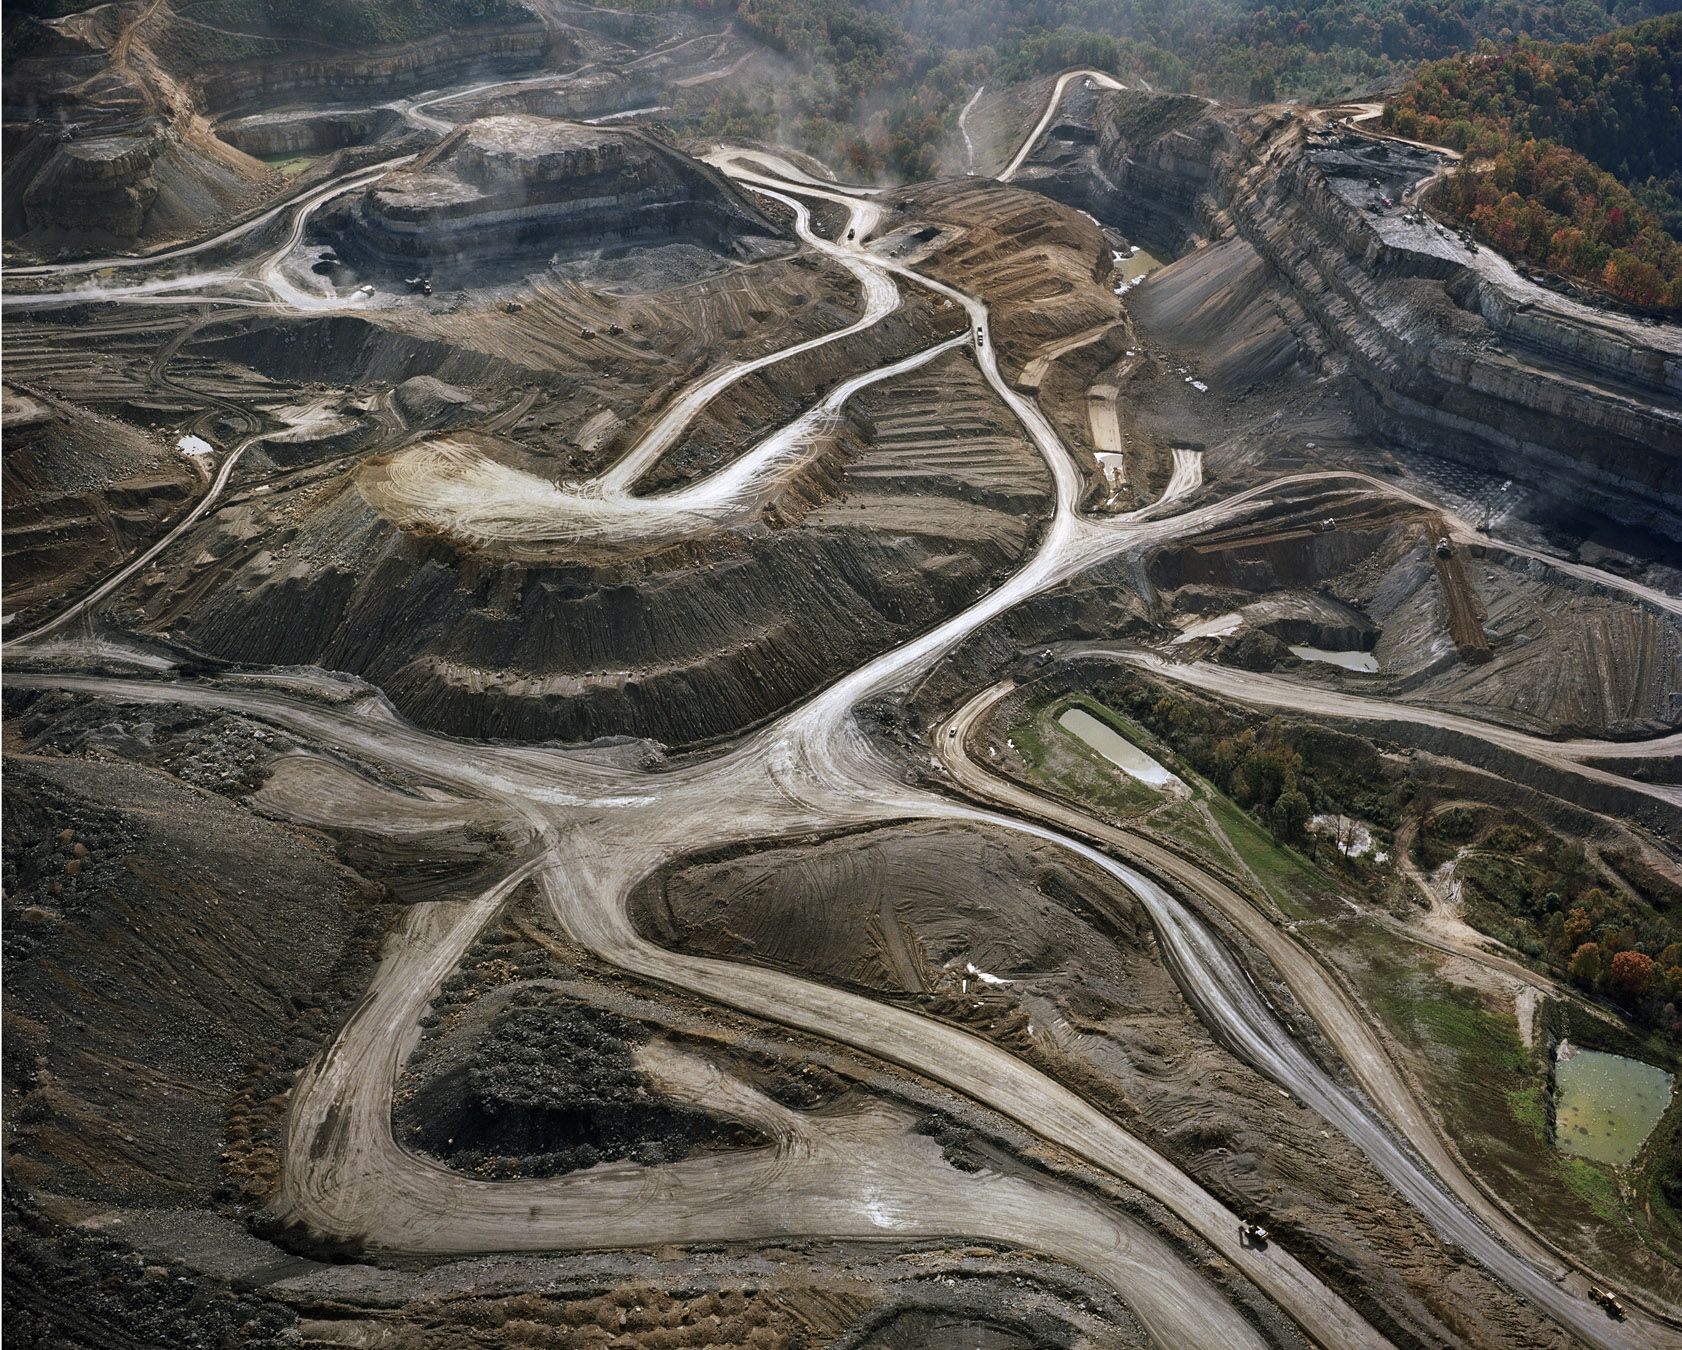 mountaintop removal mining Mountaintop removal mining is a very controversial environmental issue with many pros and cons on both sides of the argument i have found three different articles with three contrasting views in the sense that they are from different geographic regions.